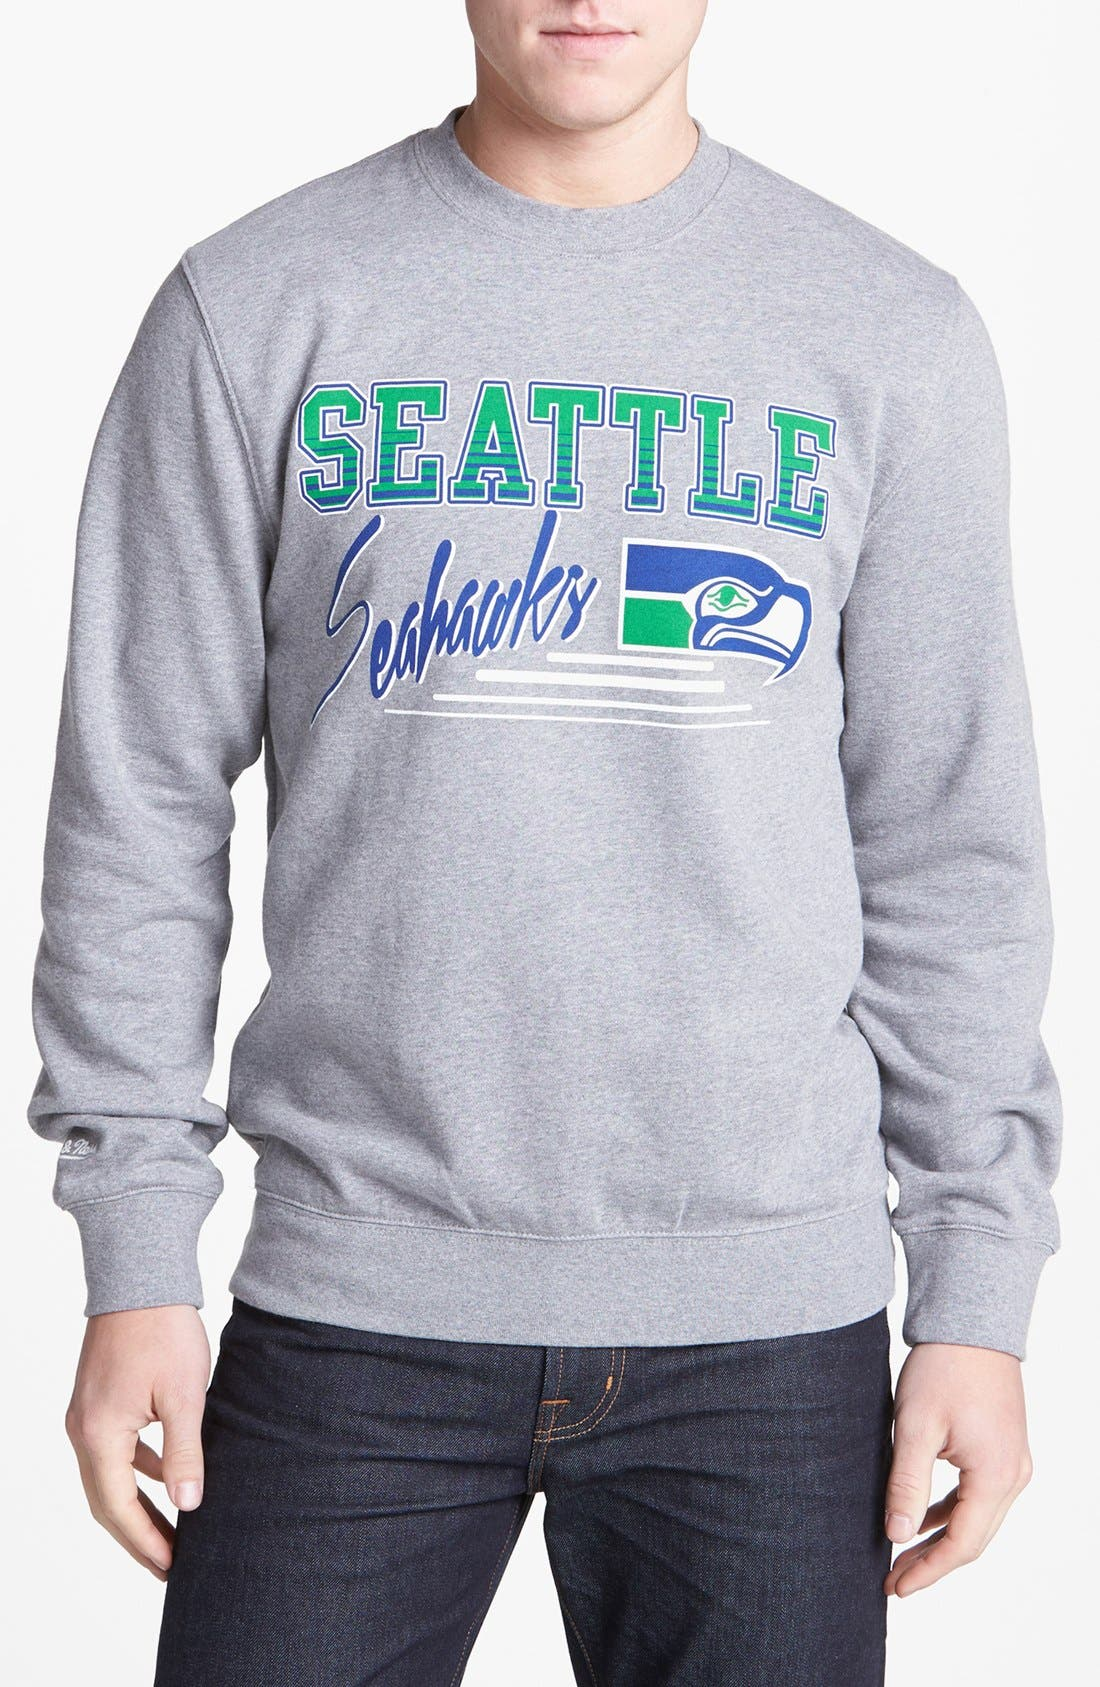 Alternate Image 1 Selected - Mitchell & Ness 'Seattle Seahawks' Sweatshirt